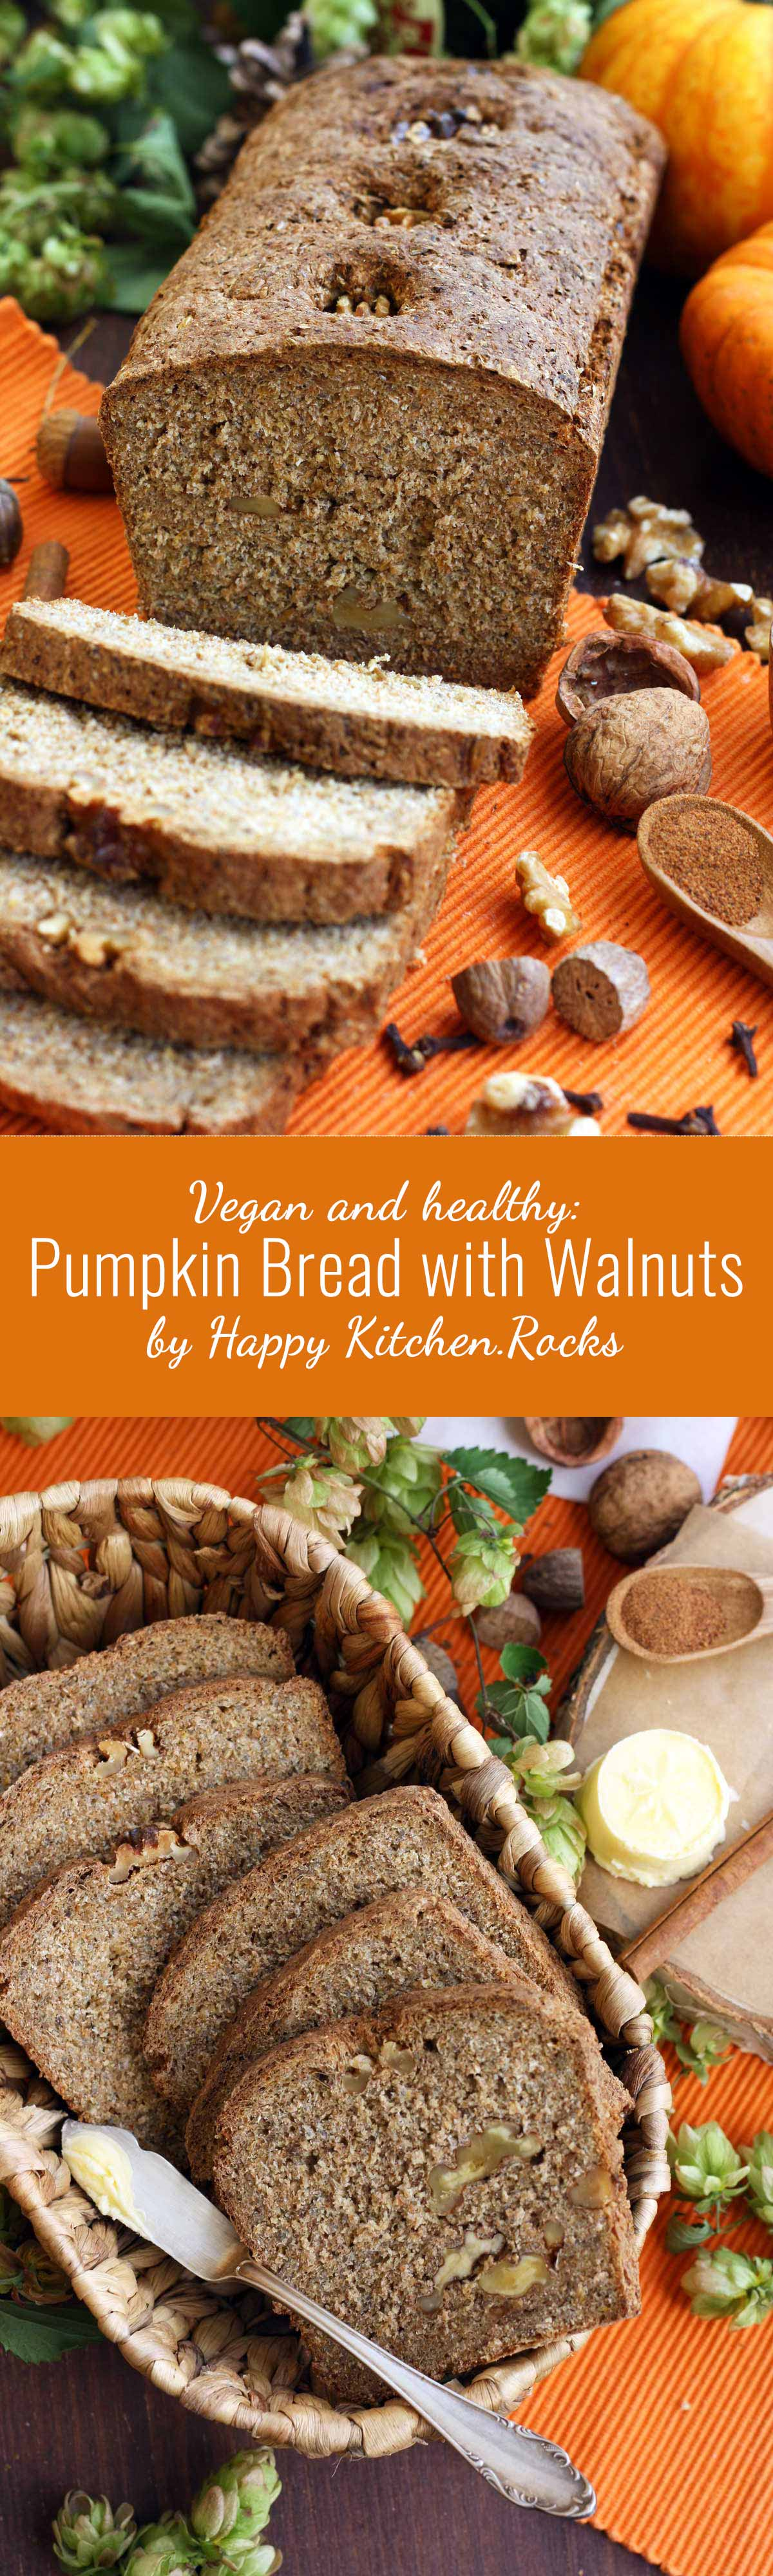 Healthy Pumpkin Bread with Walnuts - Super Long Collage of Two Images and Text Overlay